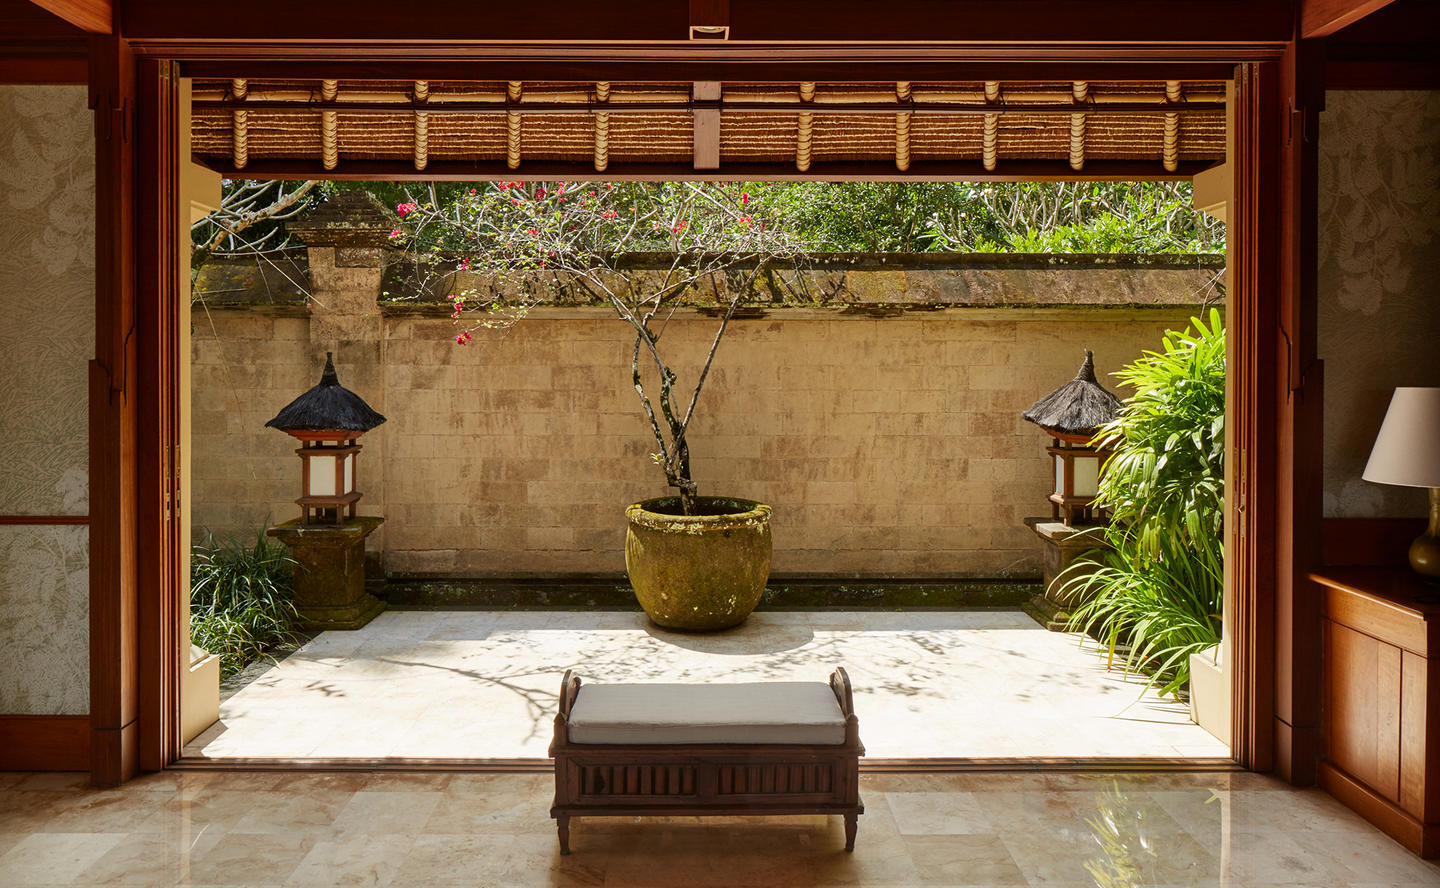 Courtyard, Valley Suite - Amandari, Bali